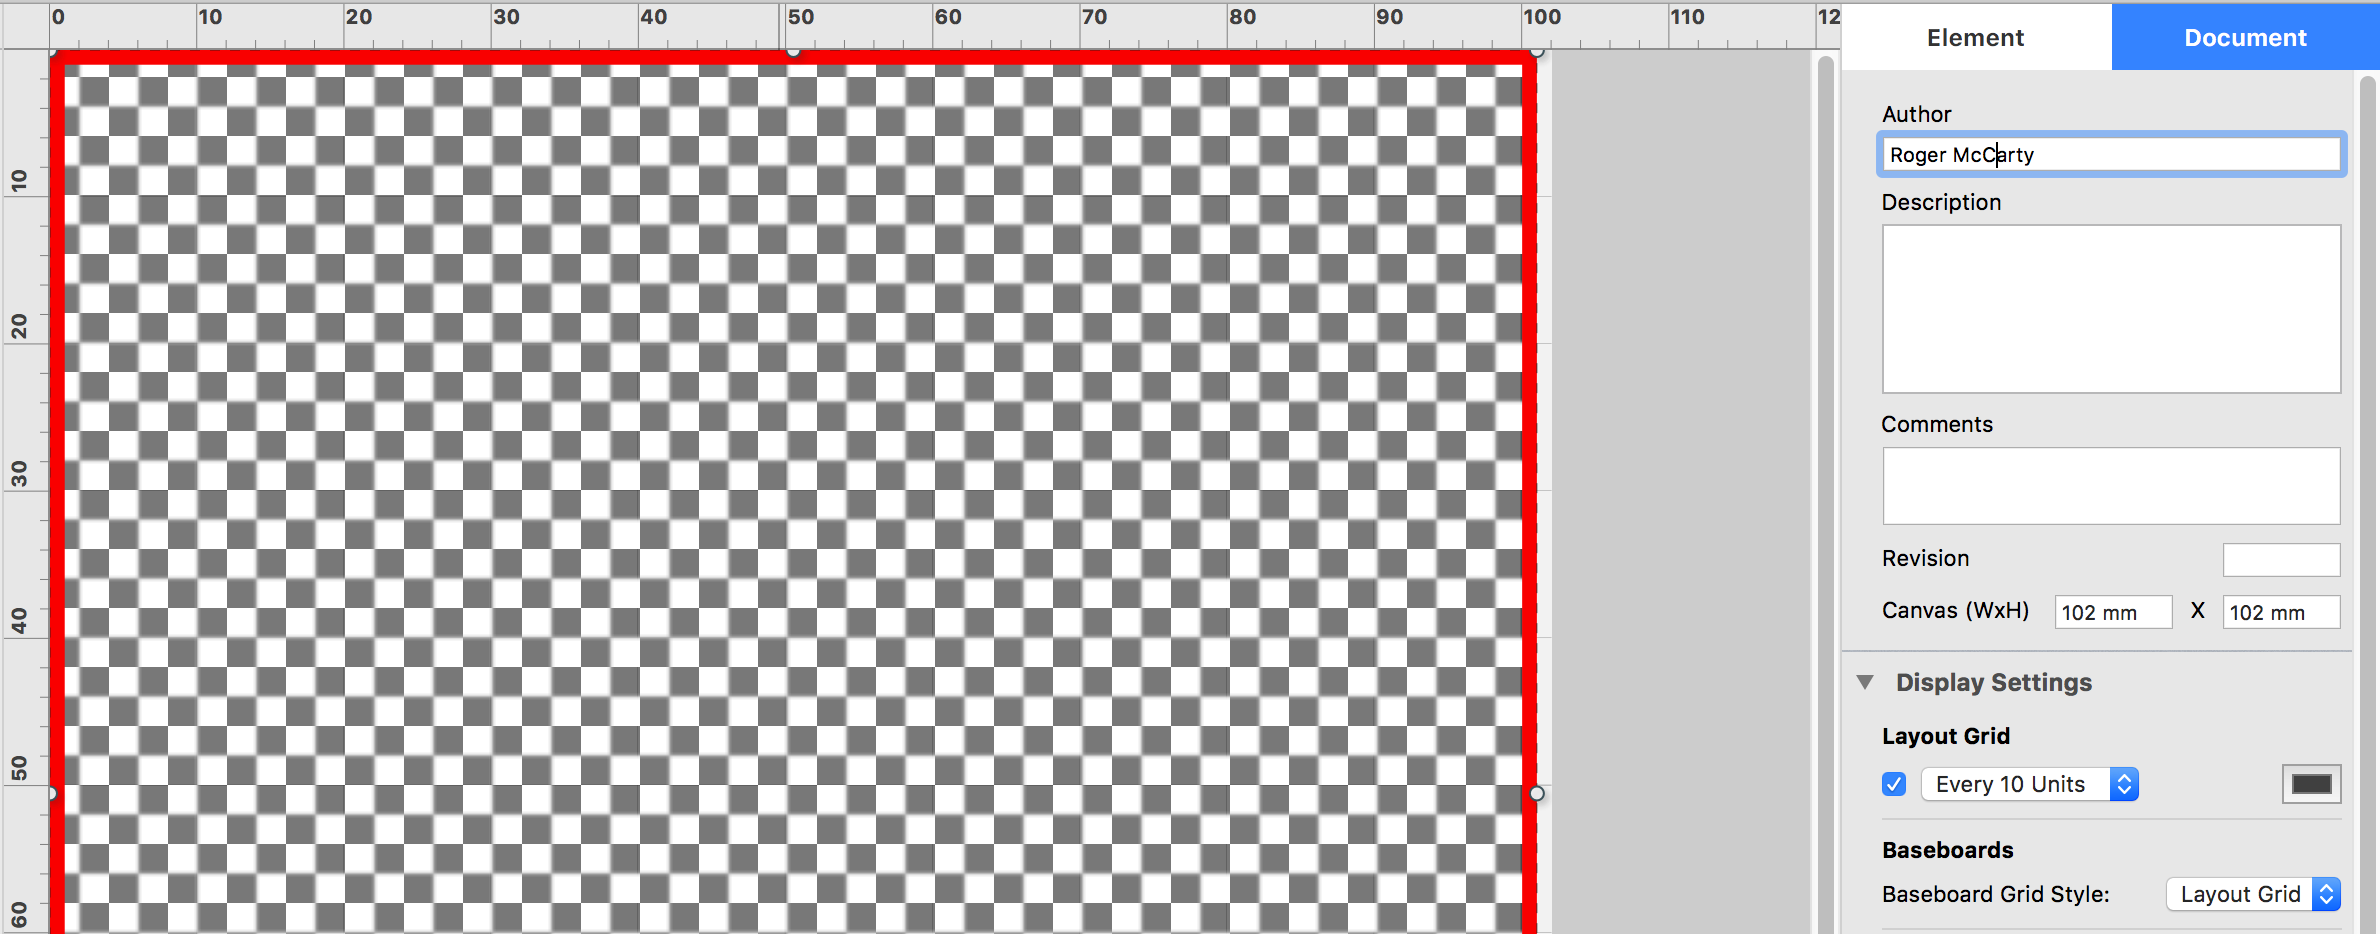 shows minimum canvas size limits.